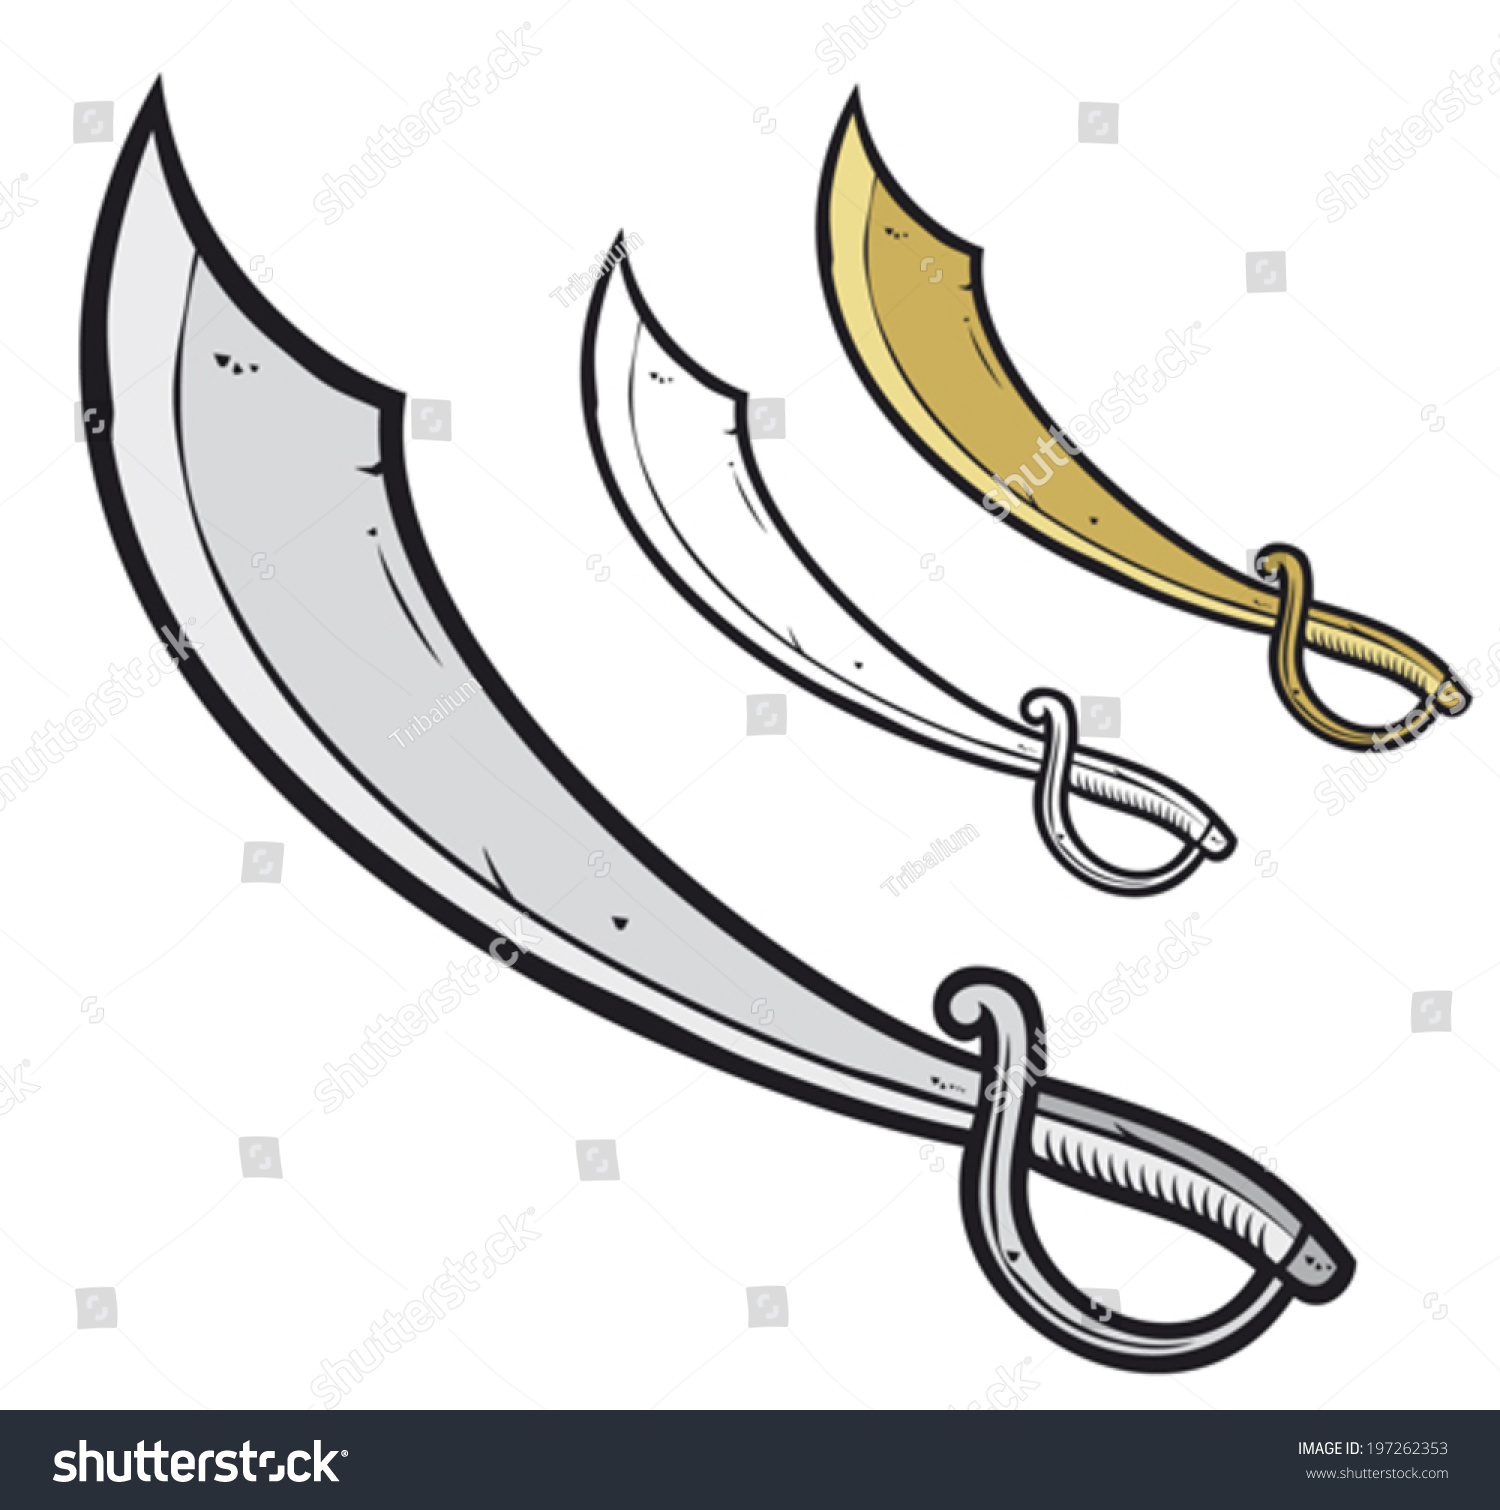 Pirate Sabre Sword Stock Vector 197262353 - Shutterstock